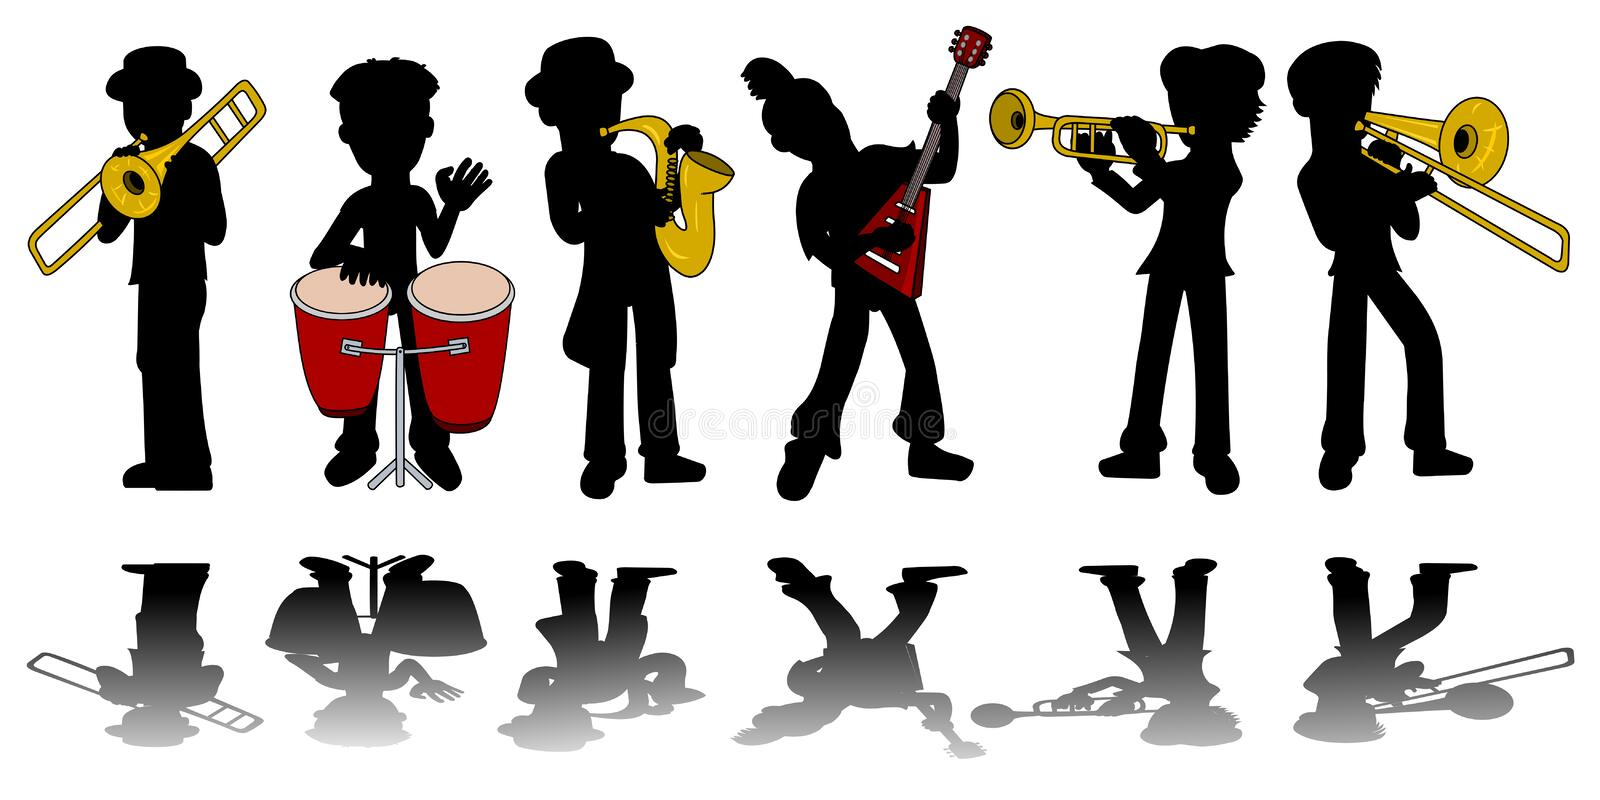 Music kids silhouettes collection stock illustration